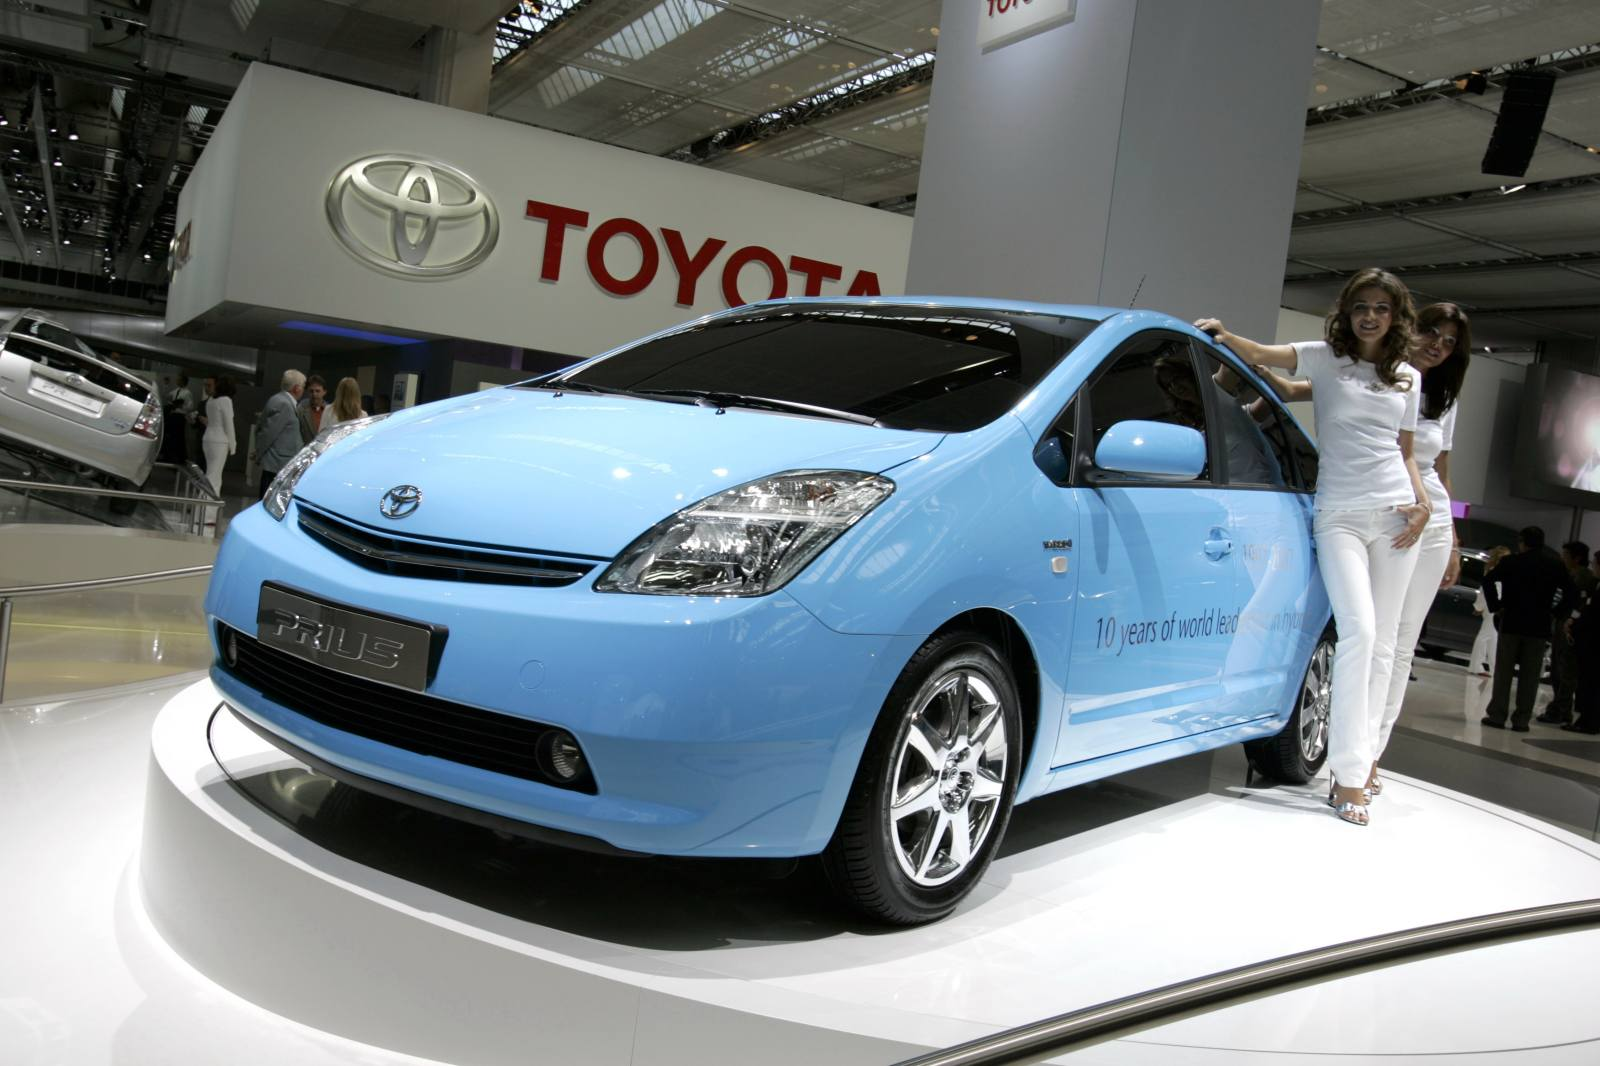 2007 toyota yaris repair manual download pdf